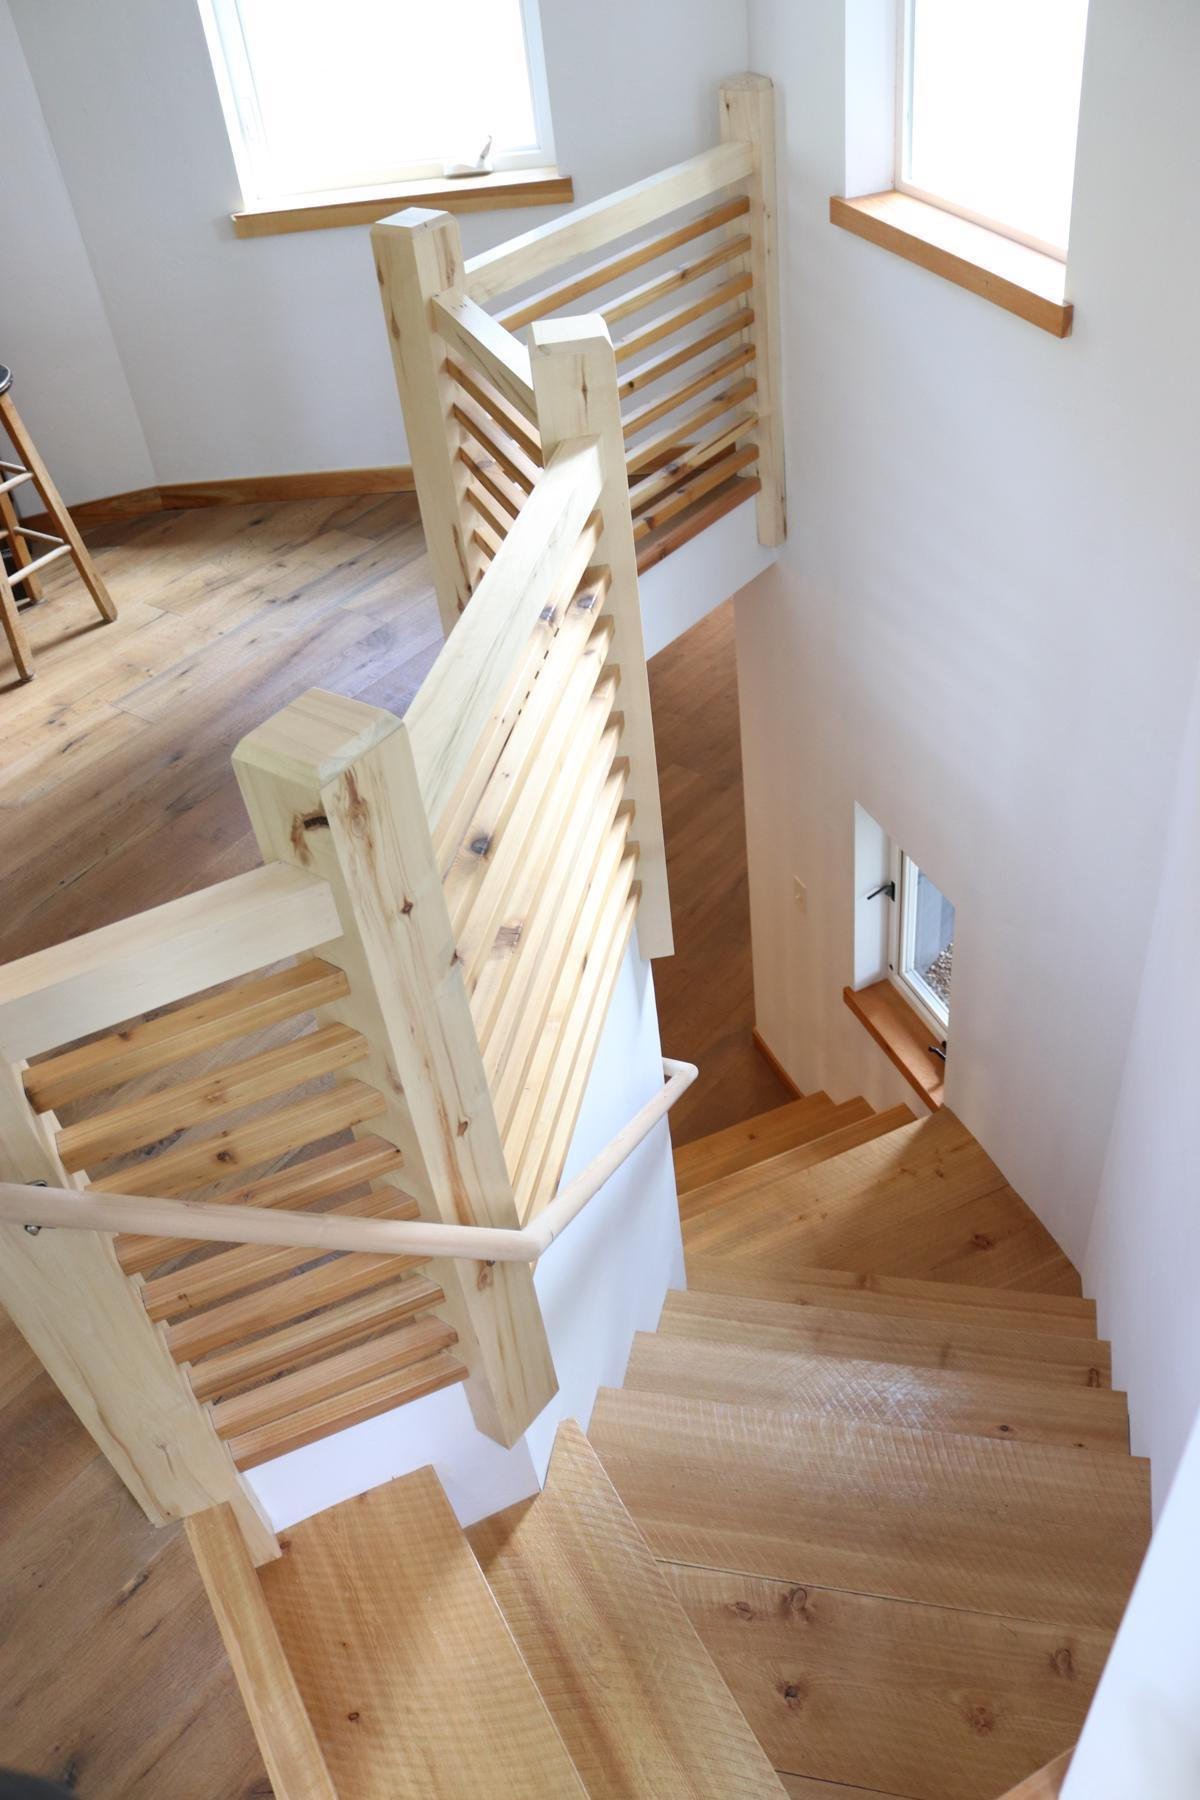 Staircase down from turret